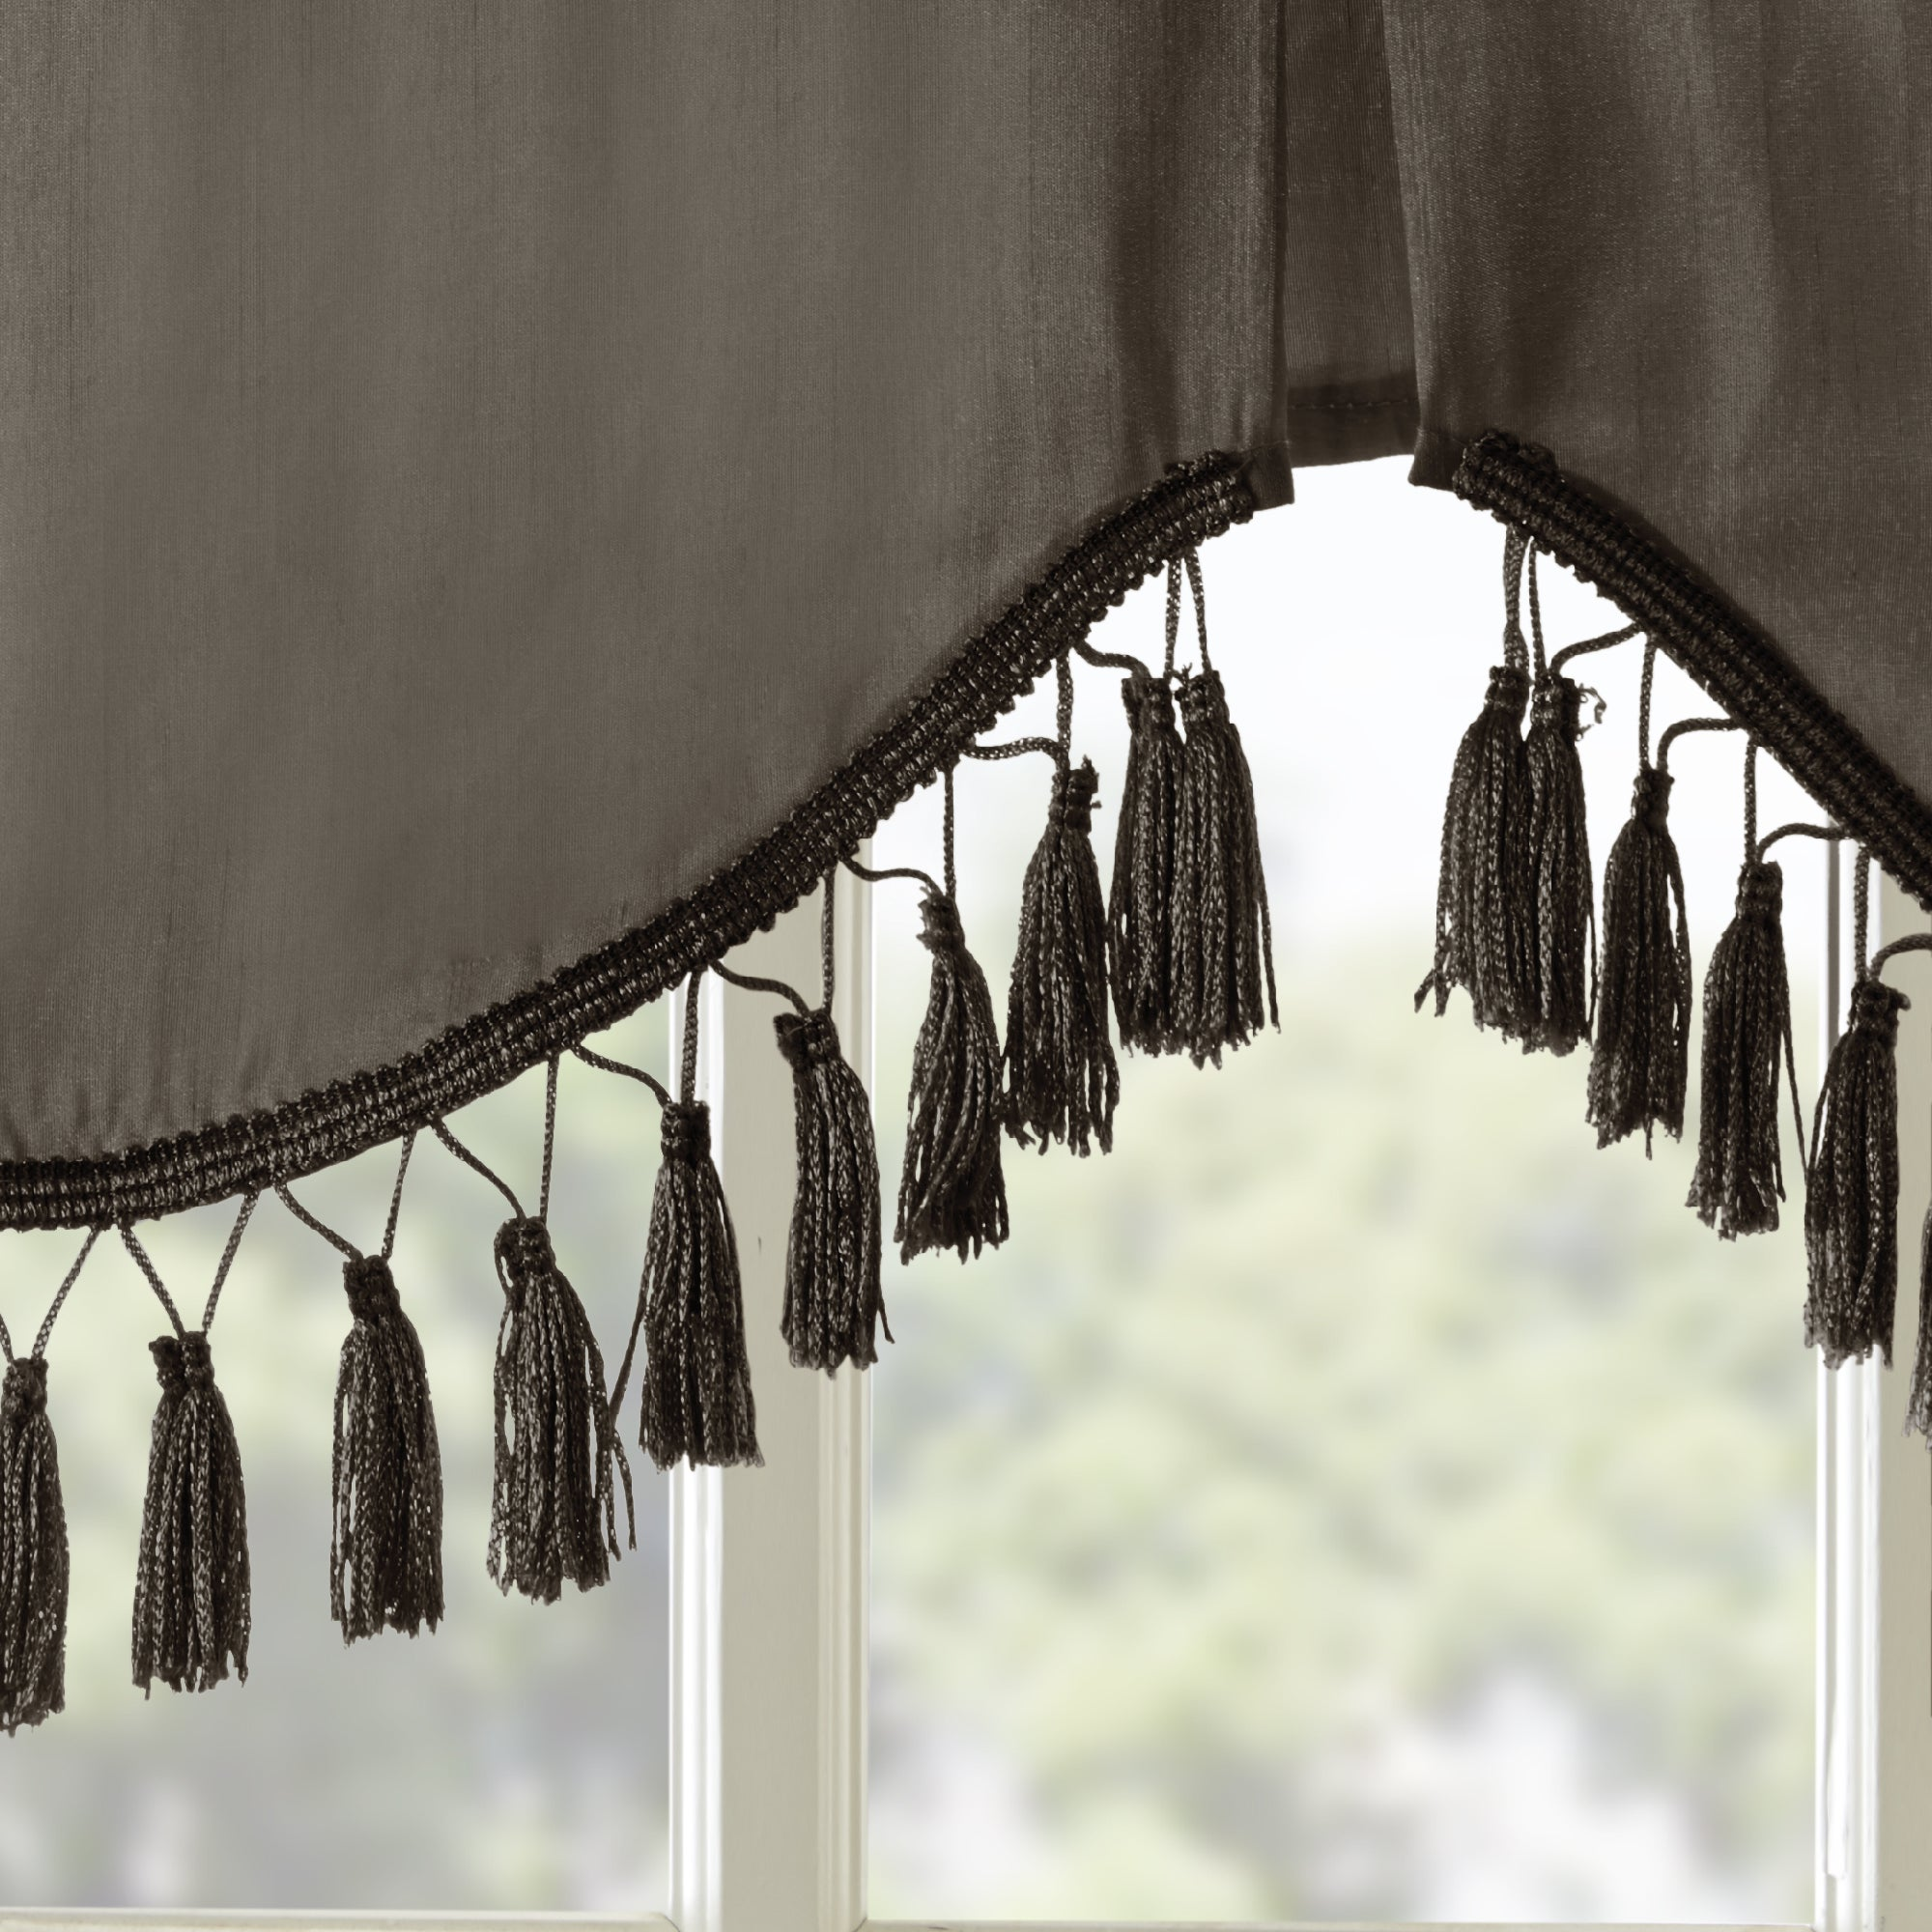 steers gardens ip valance lined curtains valances walmart com stripes kitchen or of and set homes better